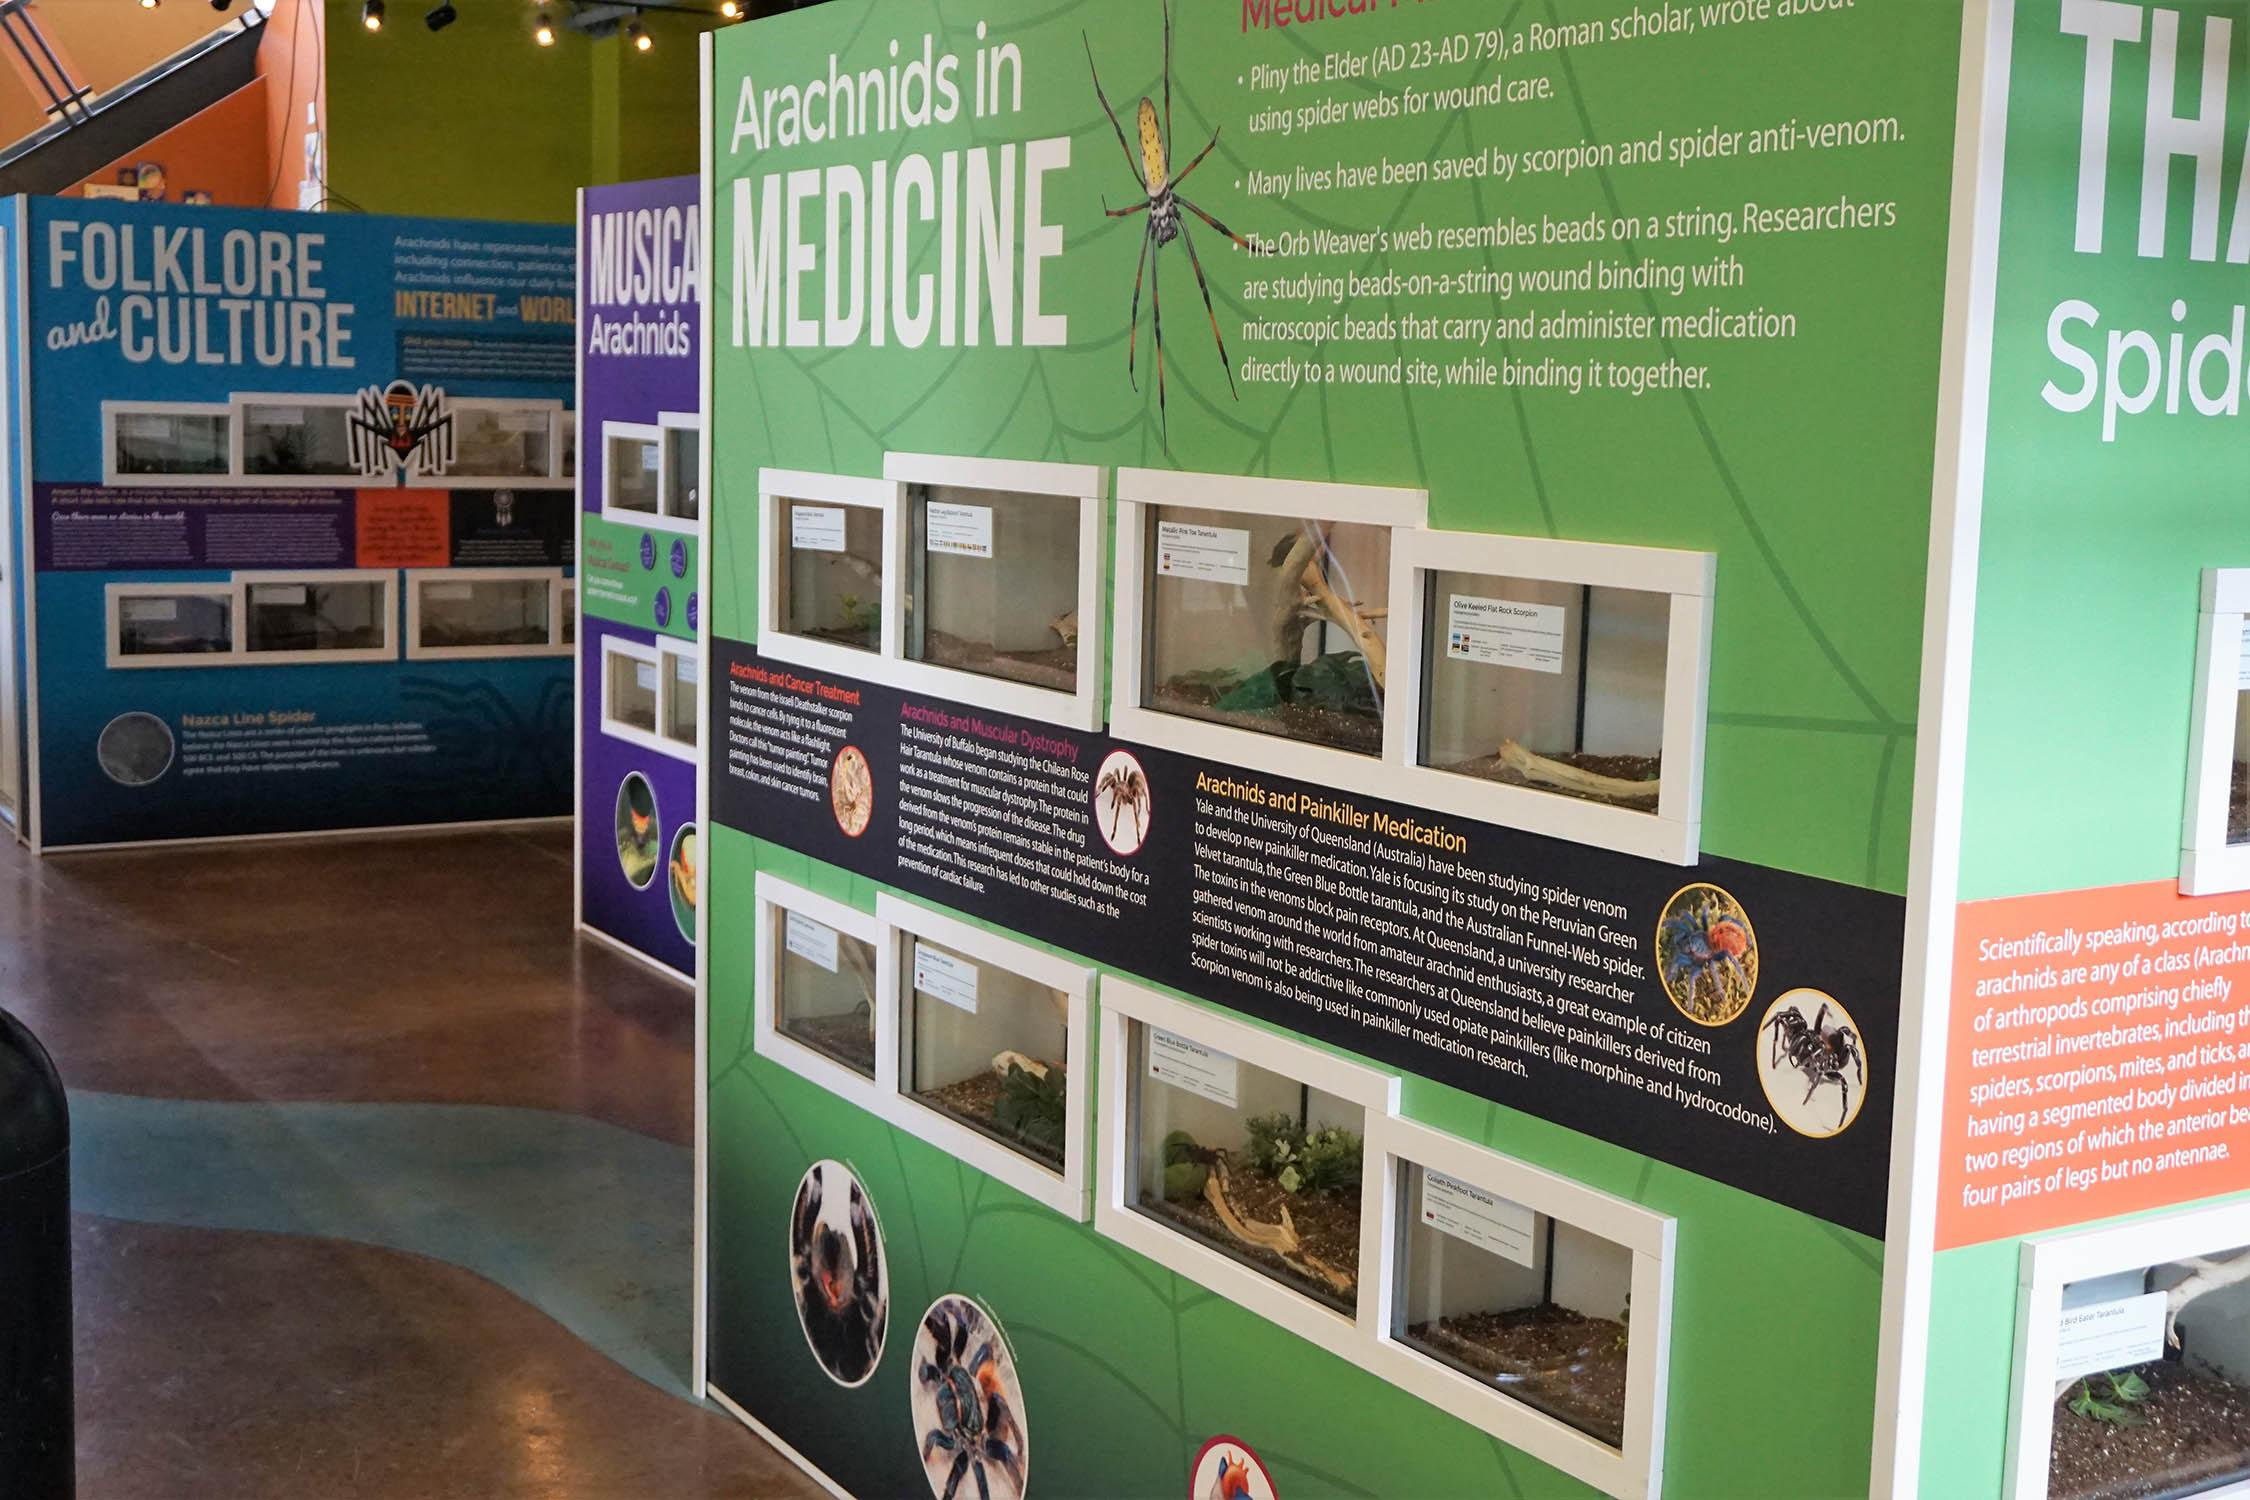 Brookfield Zoo's exhibit highlights the significance of arachnids in art, culture and science and medicine. (Jim Schulz / Chicago Zoological Society)